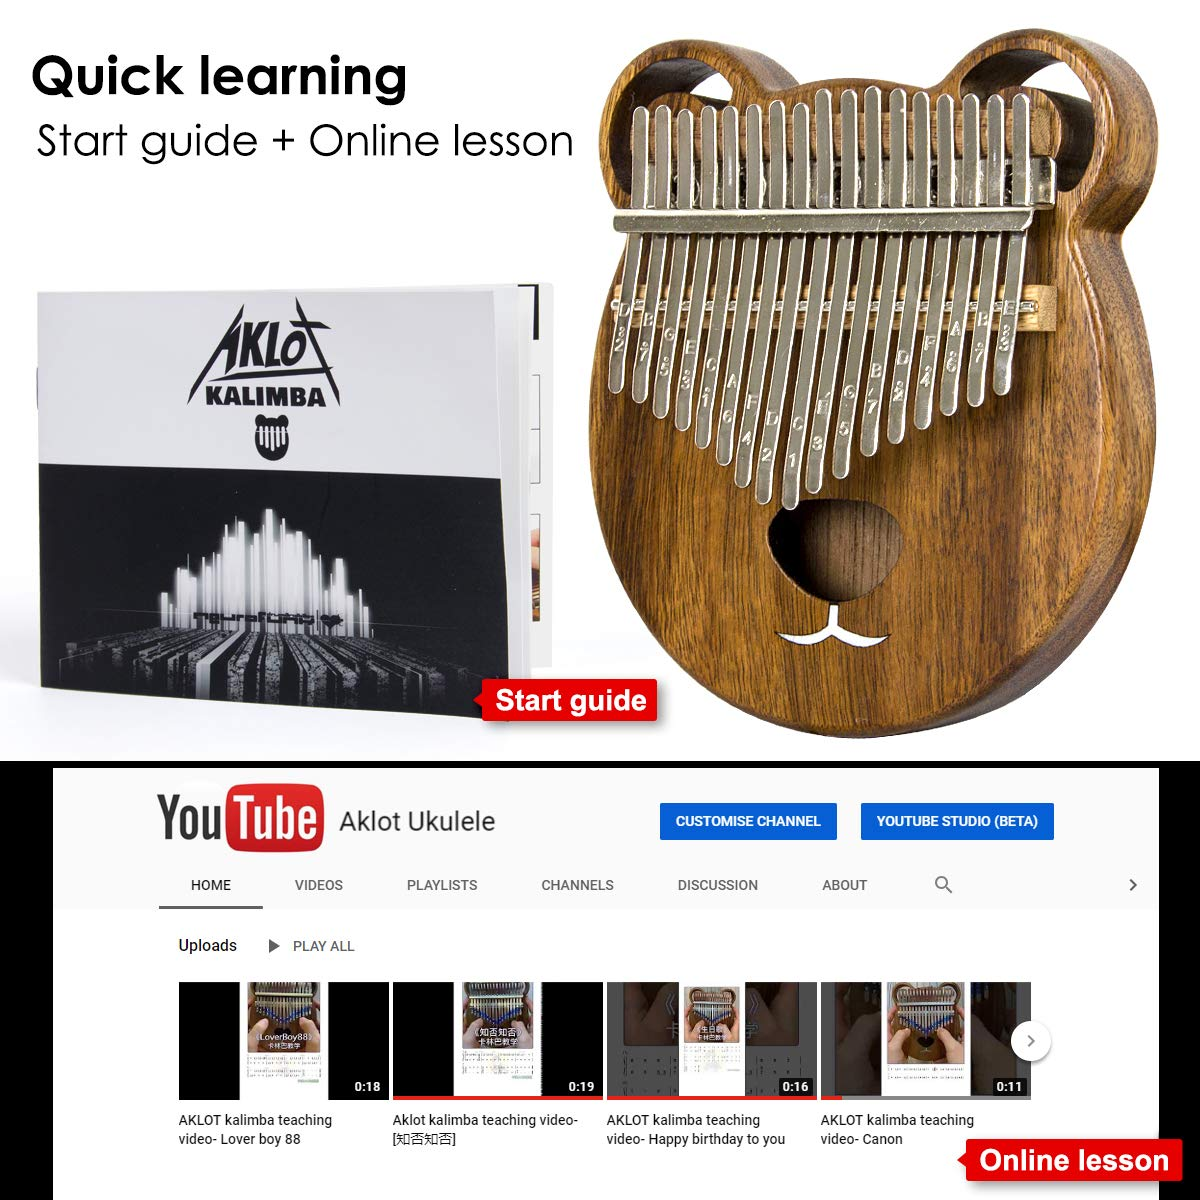 Kalimba 17 Keys Thumb Piano Solid Wood Finger Piano Start Kits African Instrument with Protective Case Tuning Hammer Study Booklet Cleaning Cloth From AKLOT by AKLOT (Image #5)